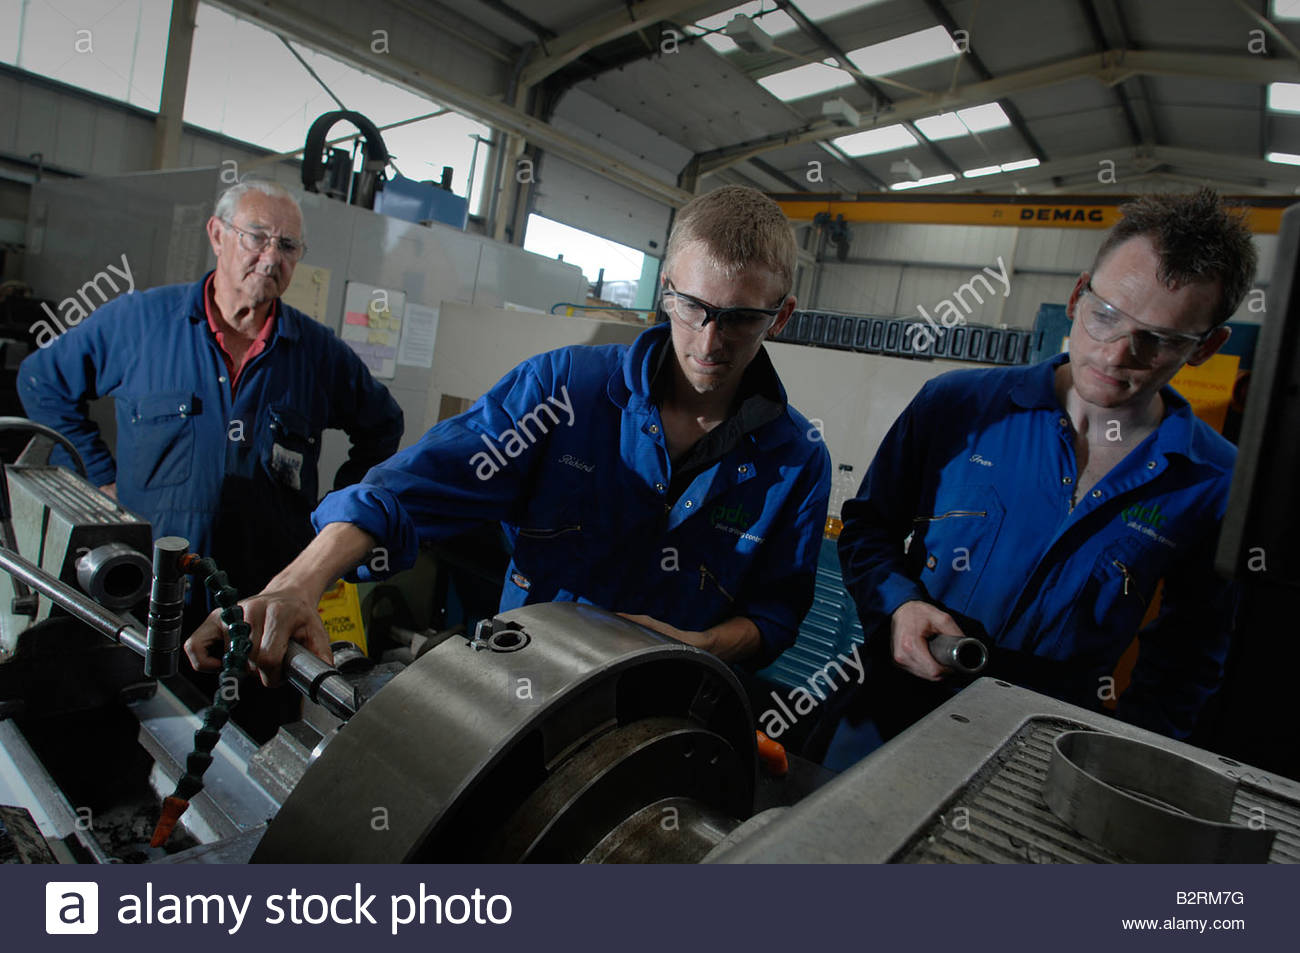 Engineering apprentices under guidance from an instructor - Stock Image